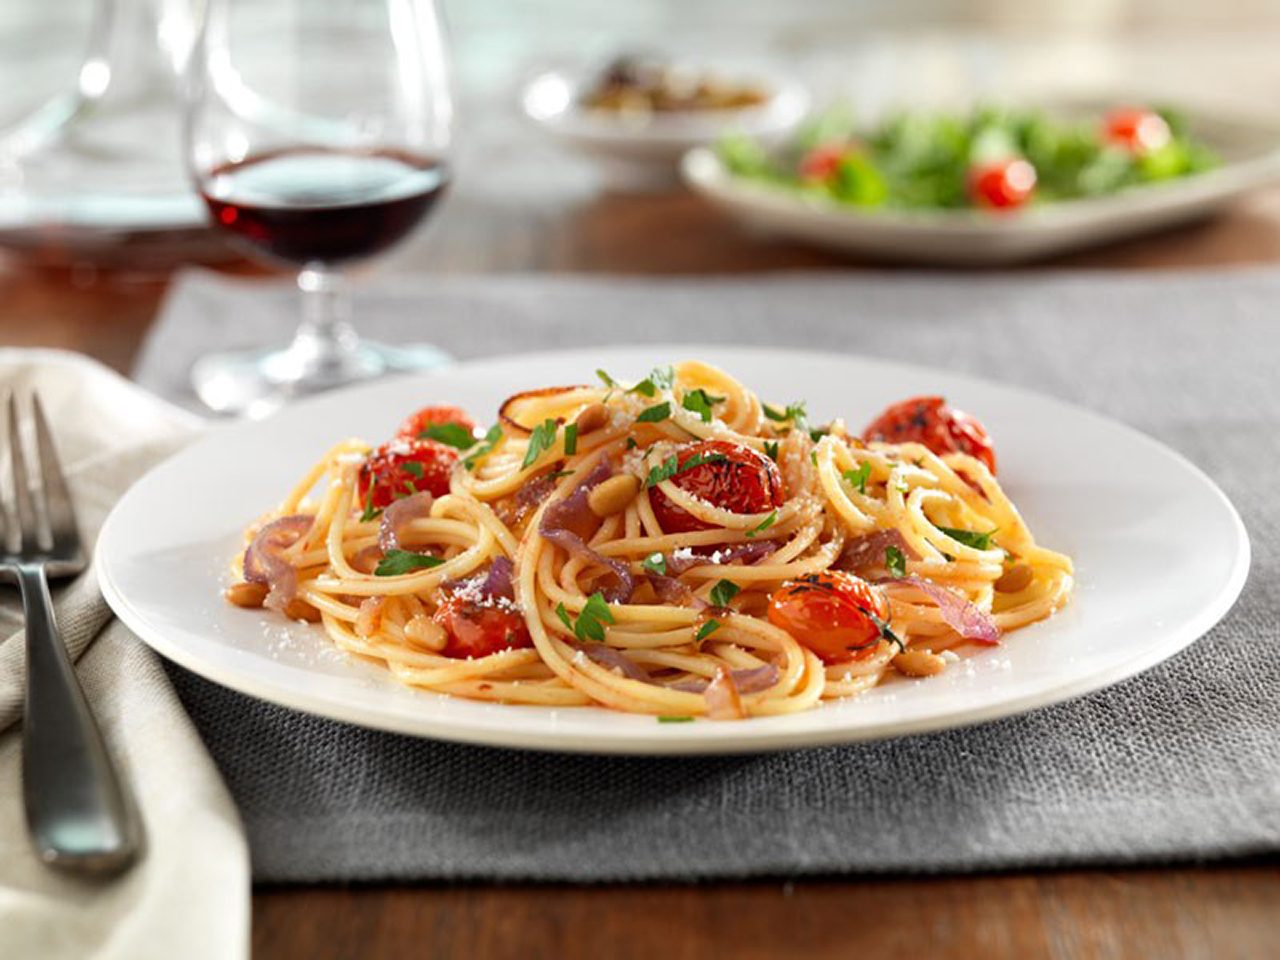 Barilla® Gluten Free Spaghetti with Caramelized Red Onions and Whole Cherry Toma